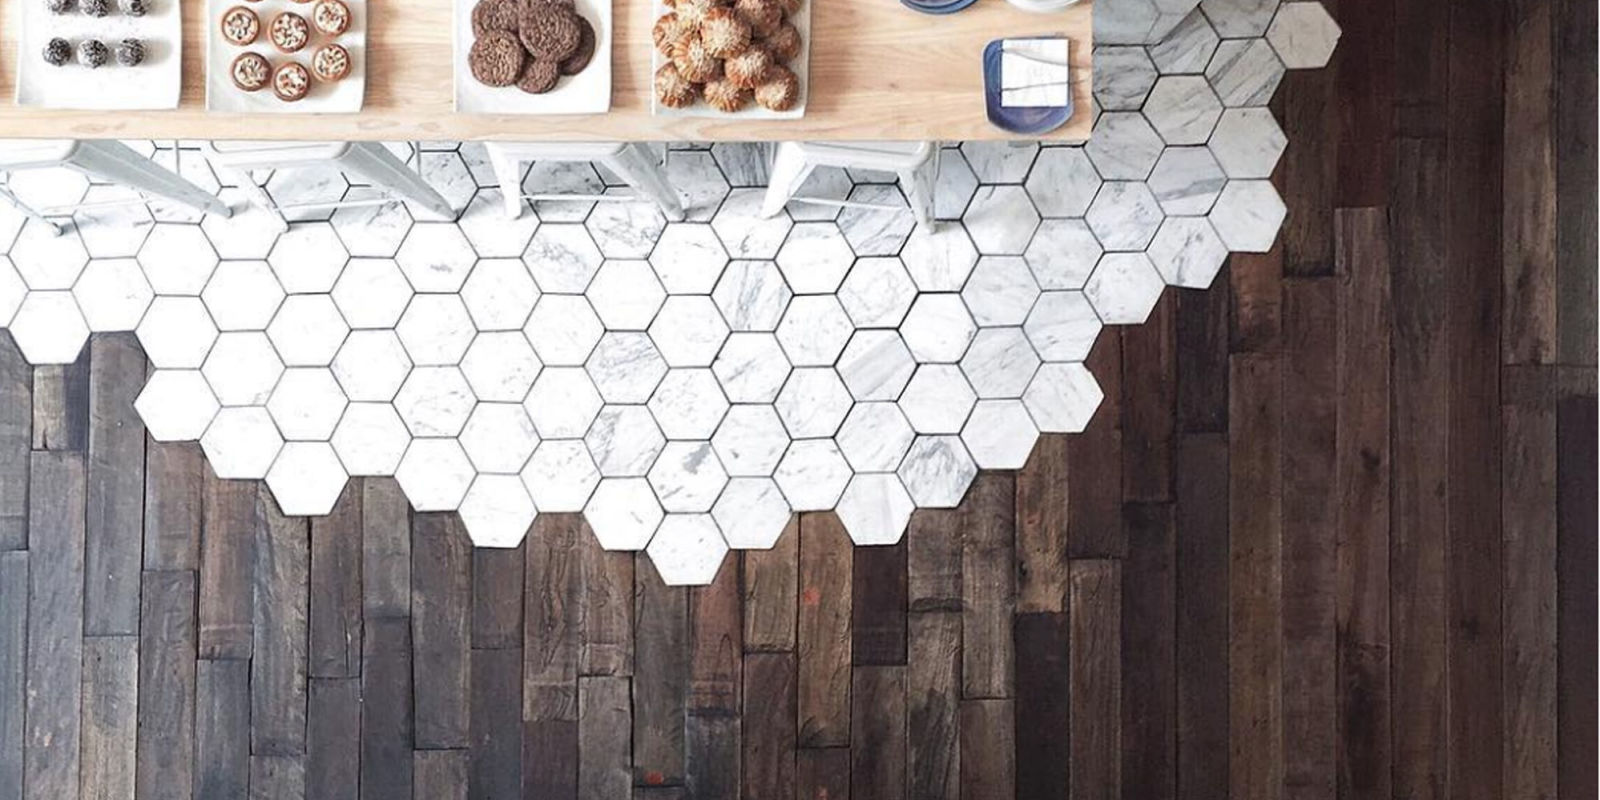 Hexagonal Tiles And Hardwood Make The Most Beautiful